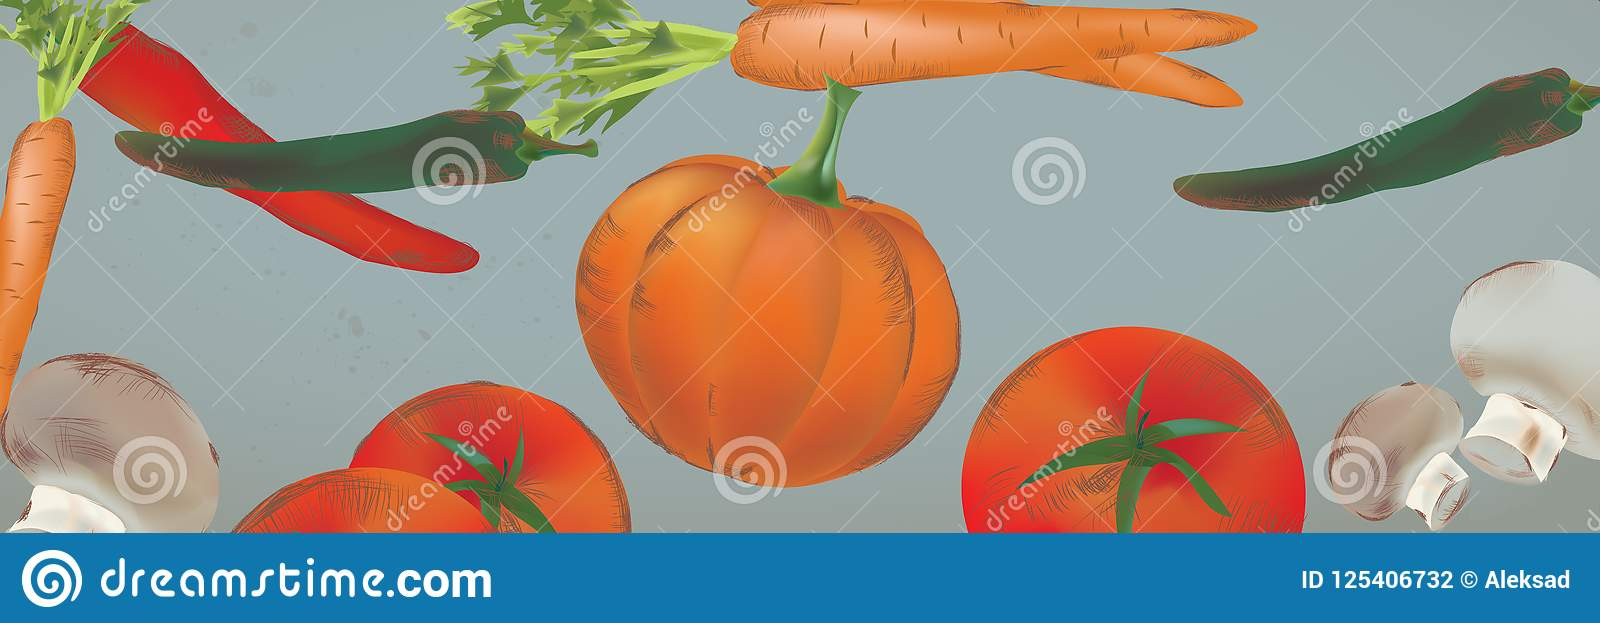 Banner with Seamless Background With Vegetables and Fruits